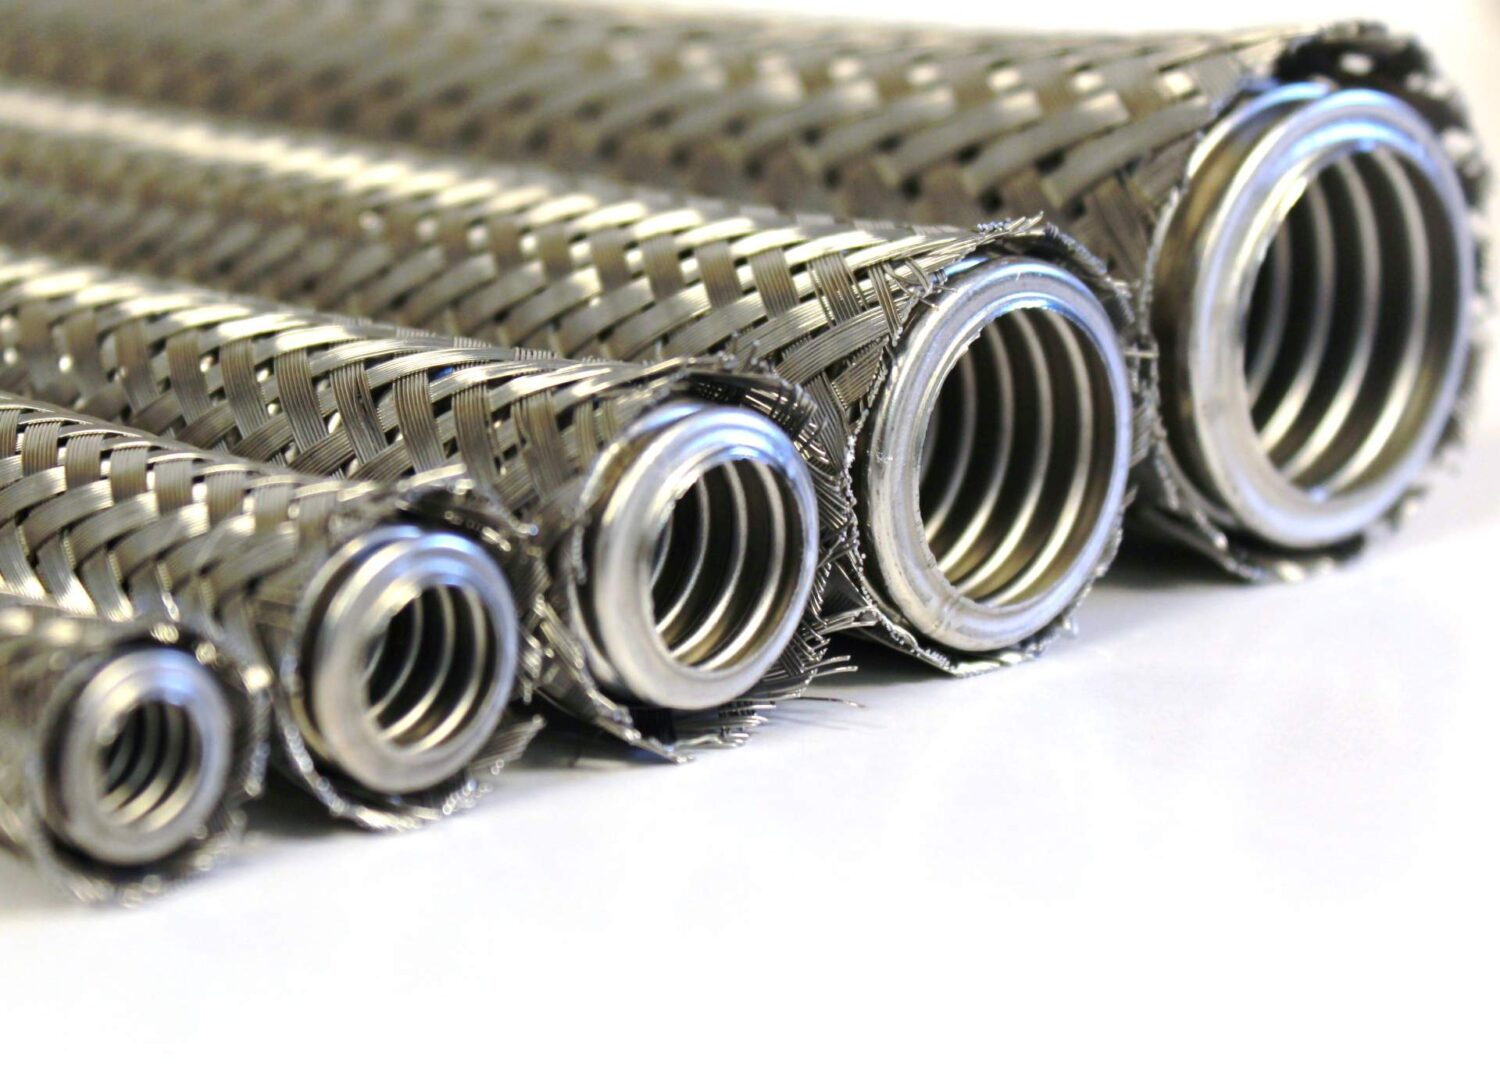 All Metal Hose, Stainless Steel Hose, Flexible Metal Hose